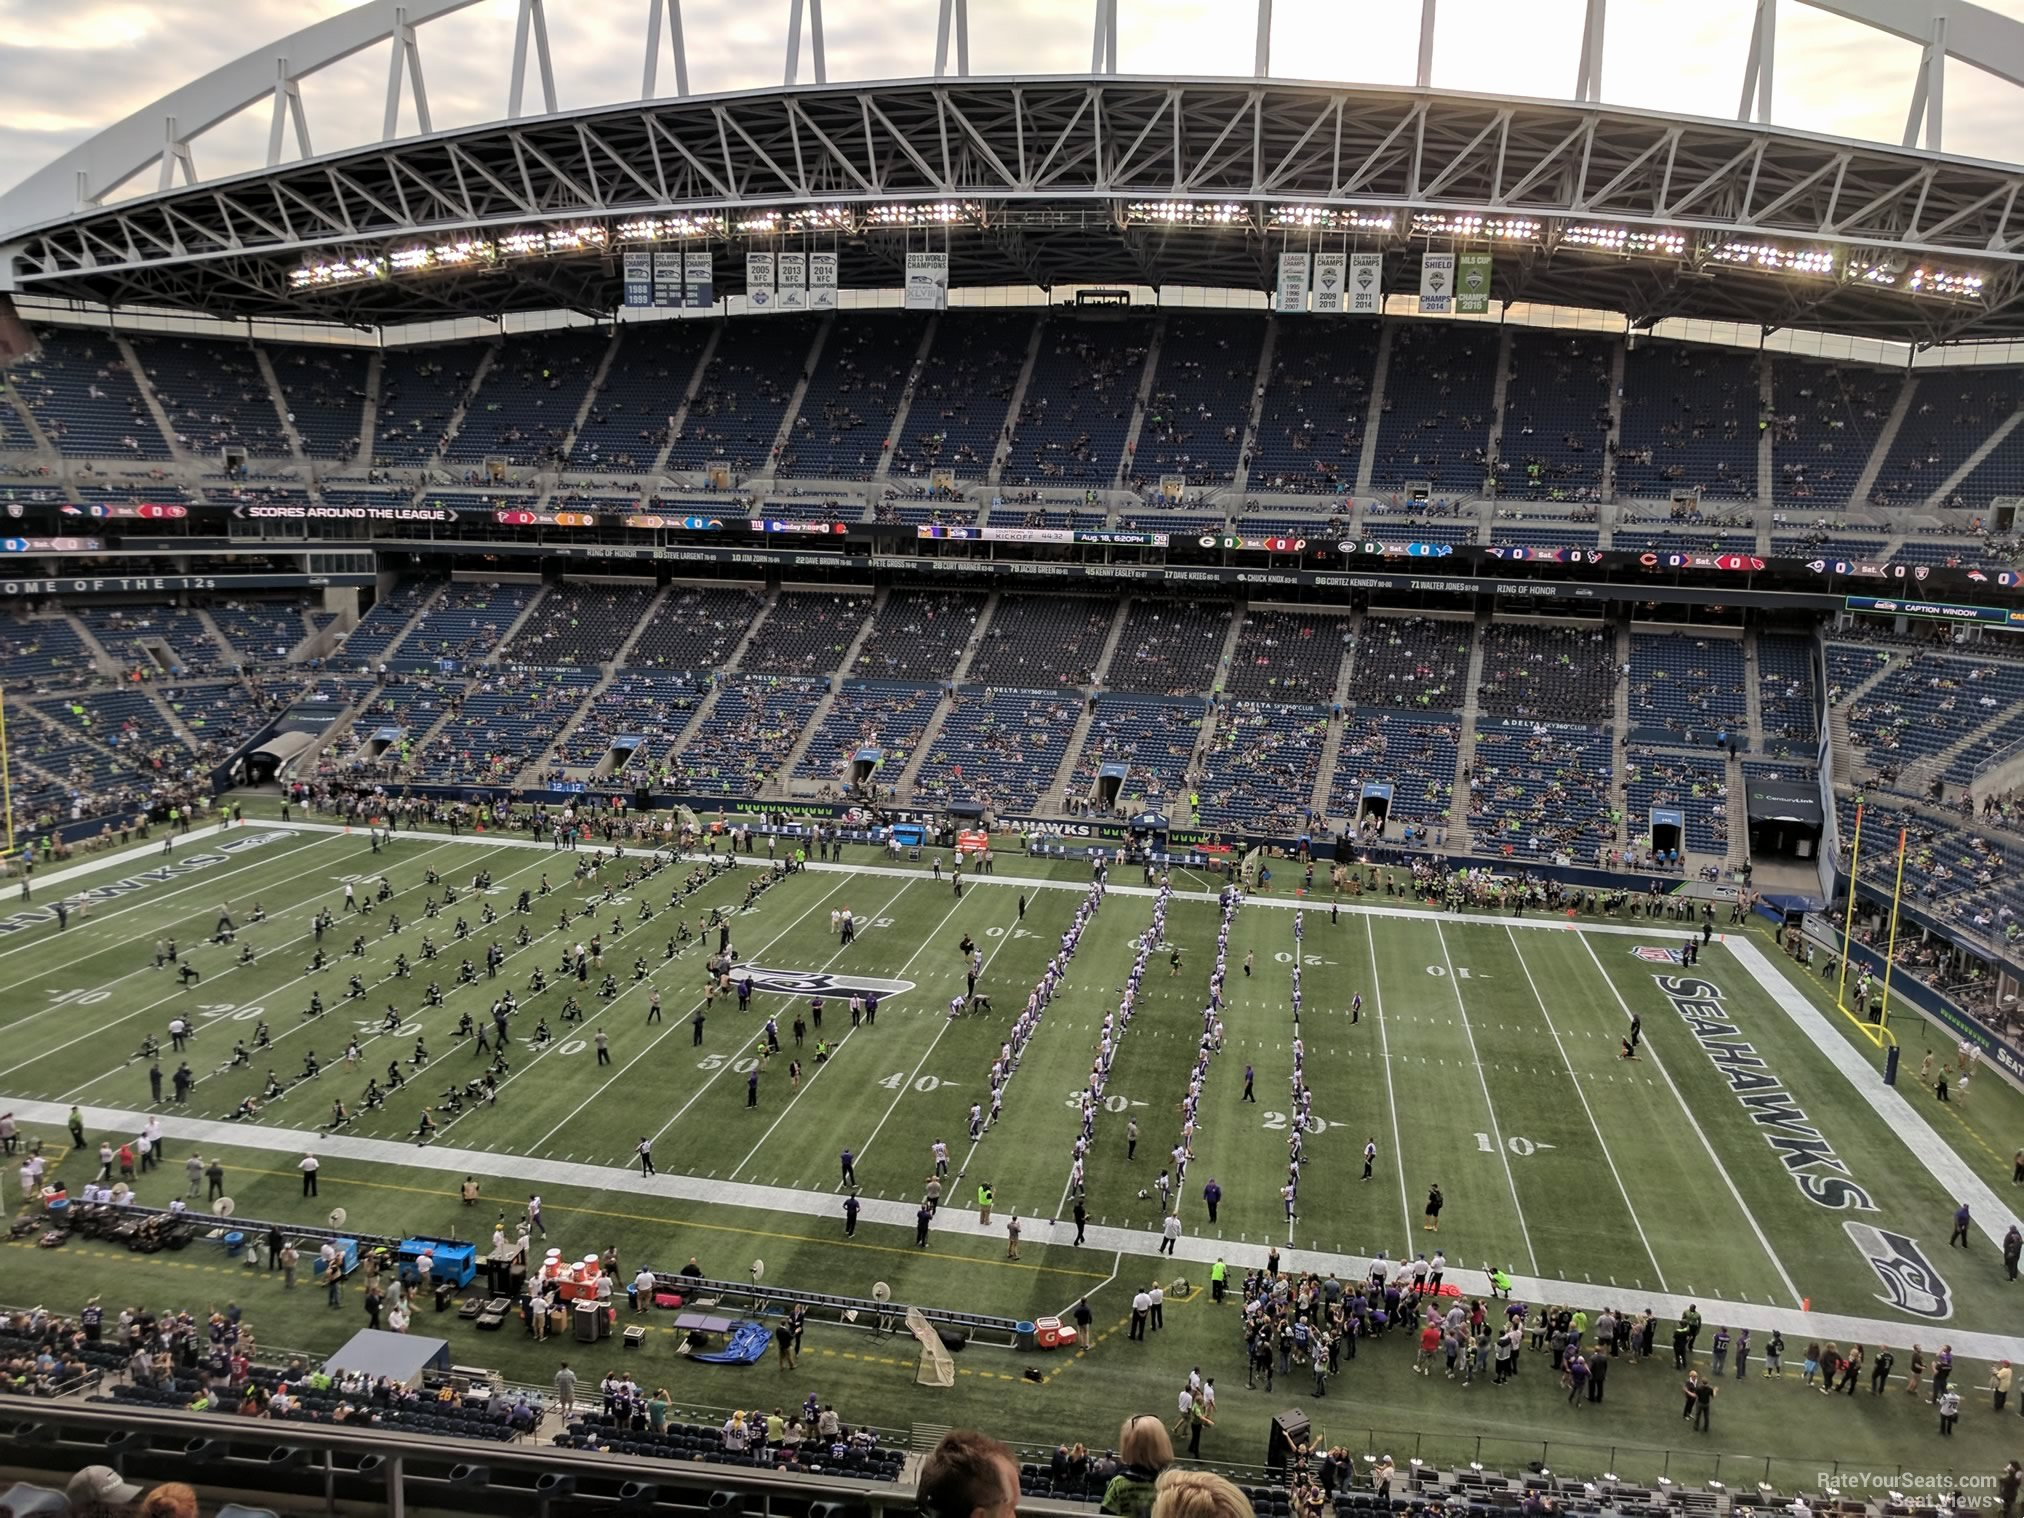 Seahawks Stadium Seat View New Centurylink Field Section 307 Seattle Seahawks